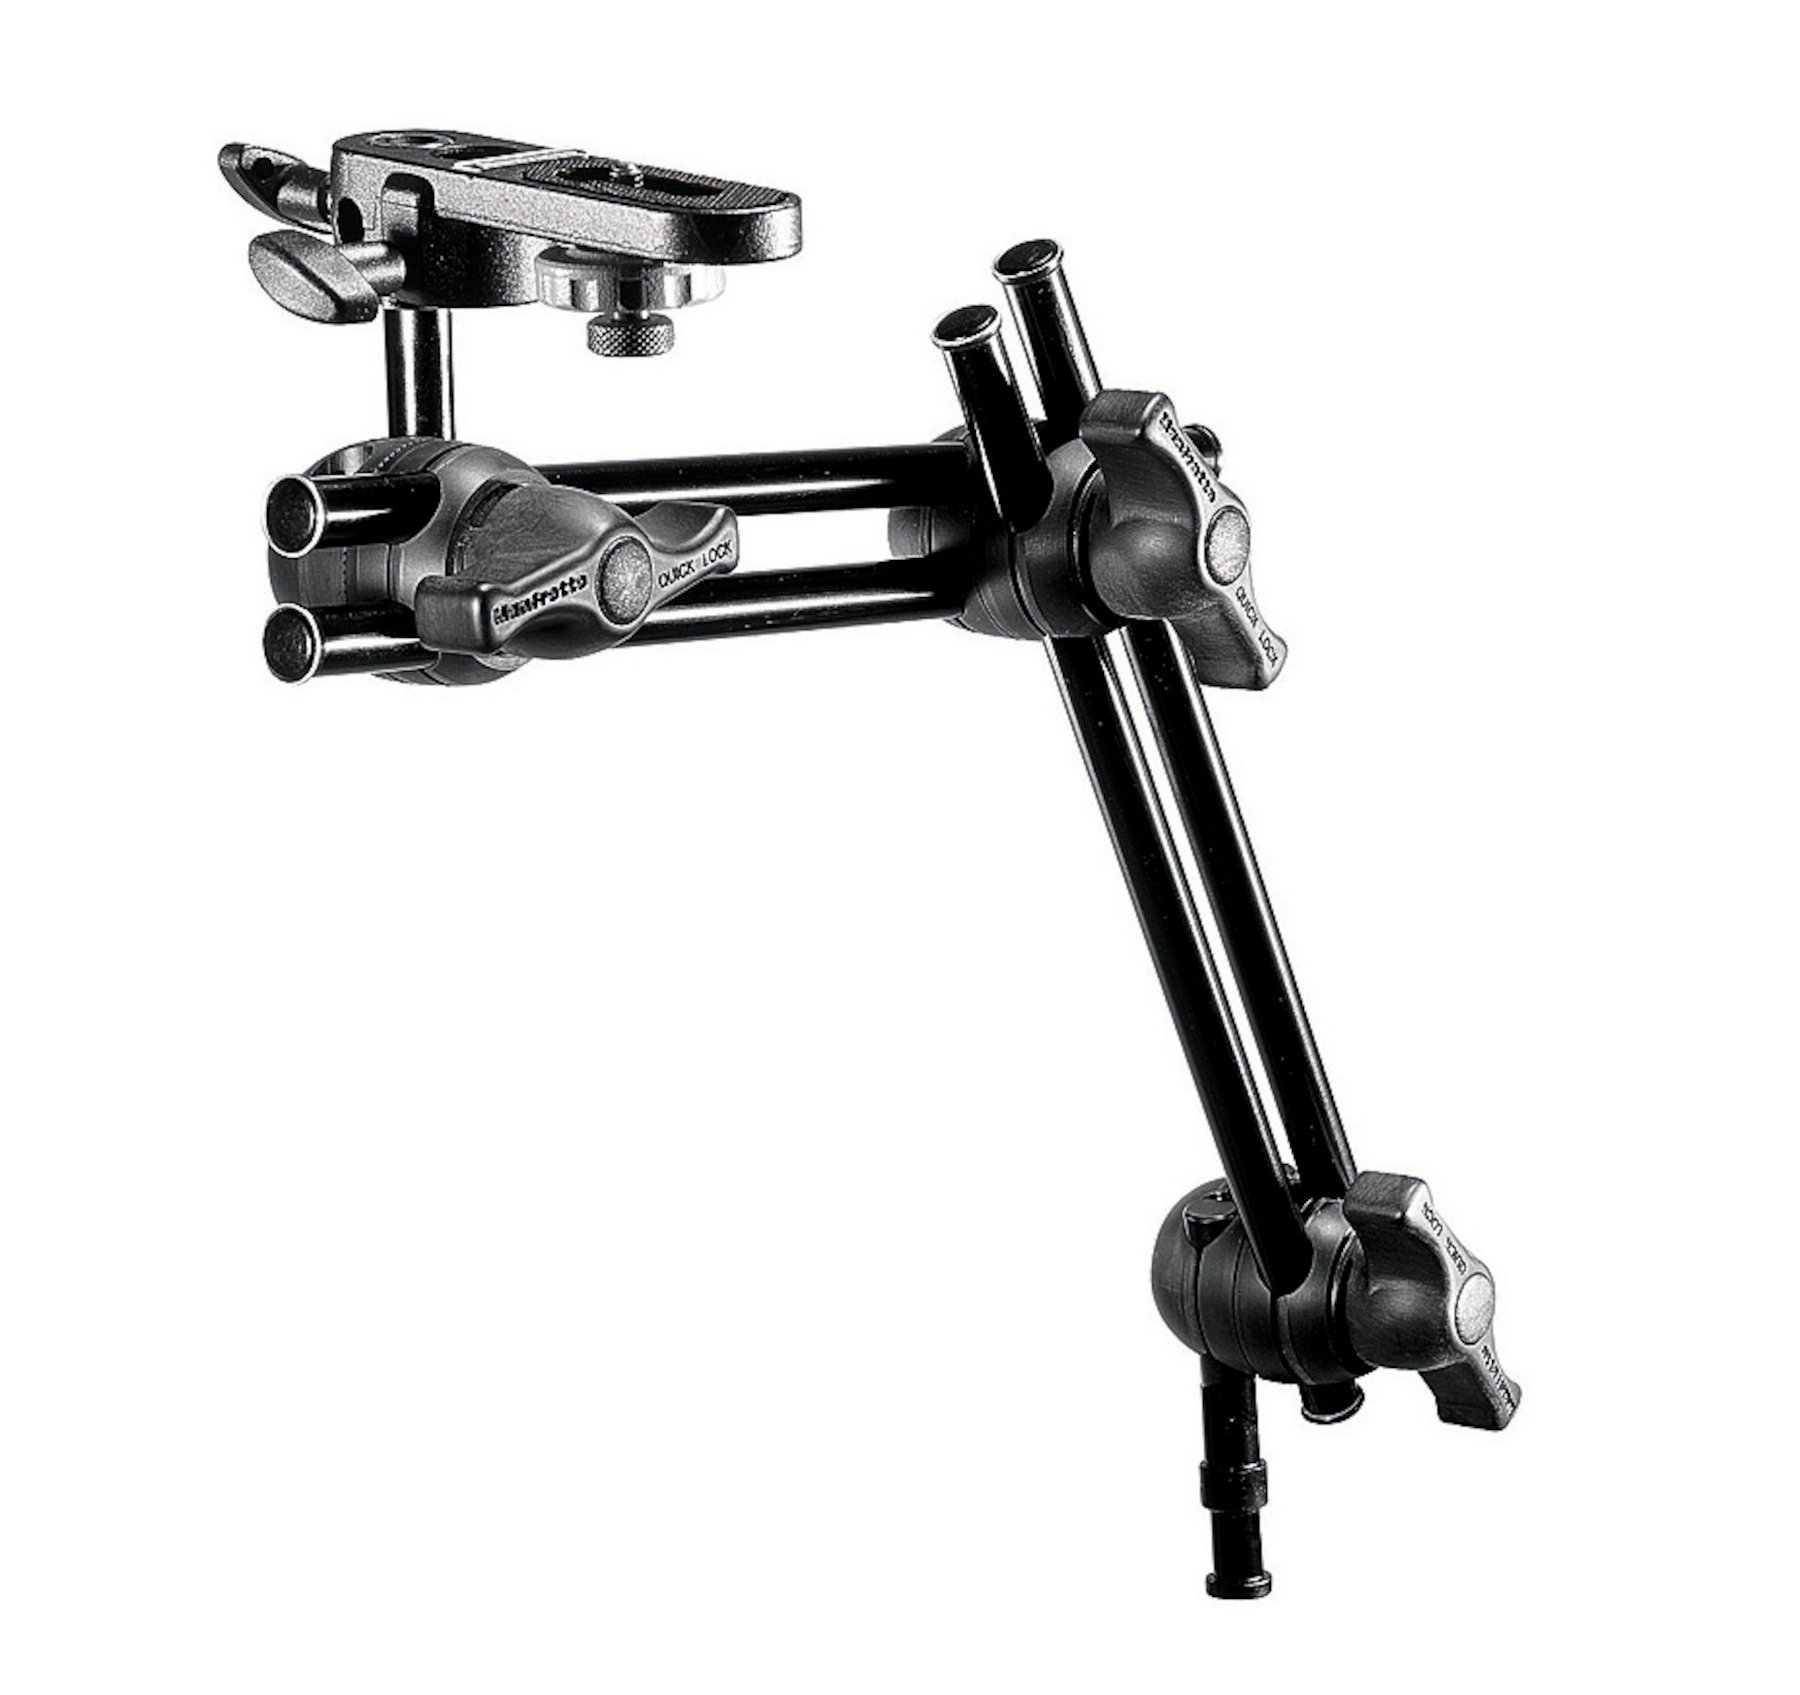 Manfrotto 396B-2 2-Section Double Articulated Arm with Camera Attachment 396B-2